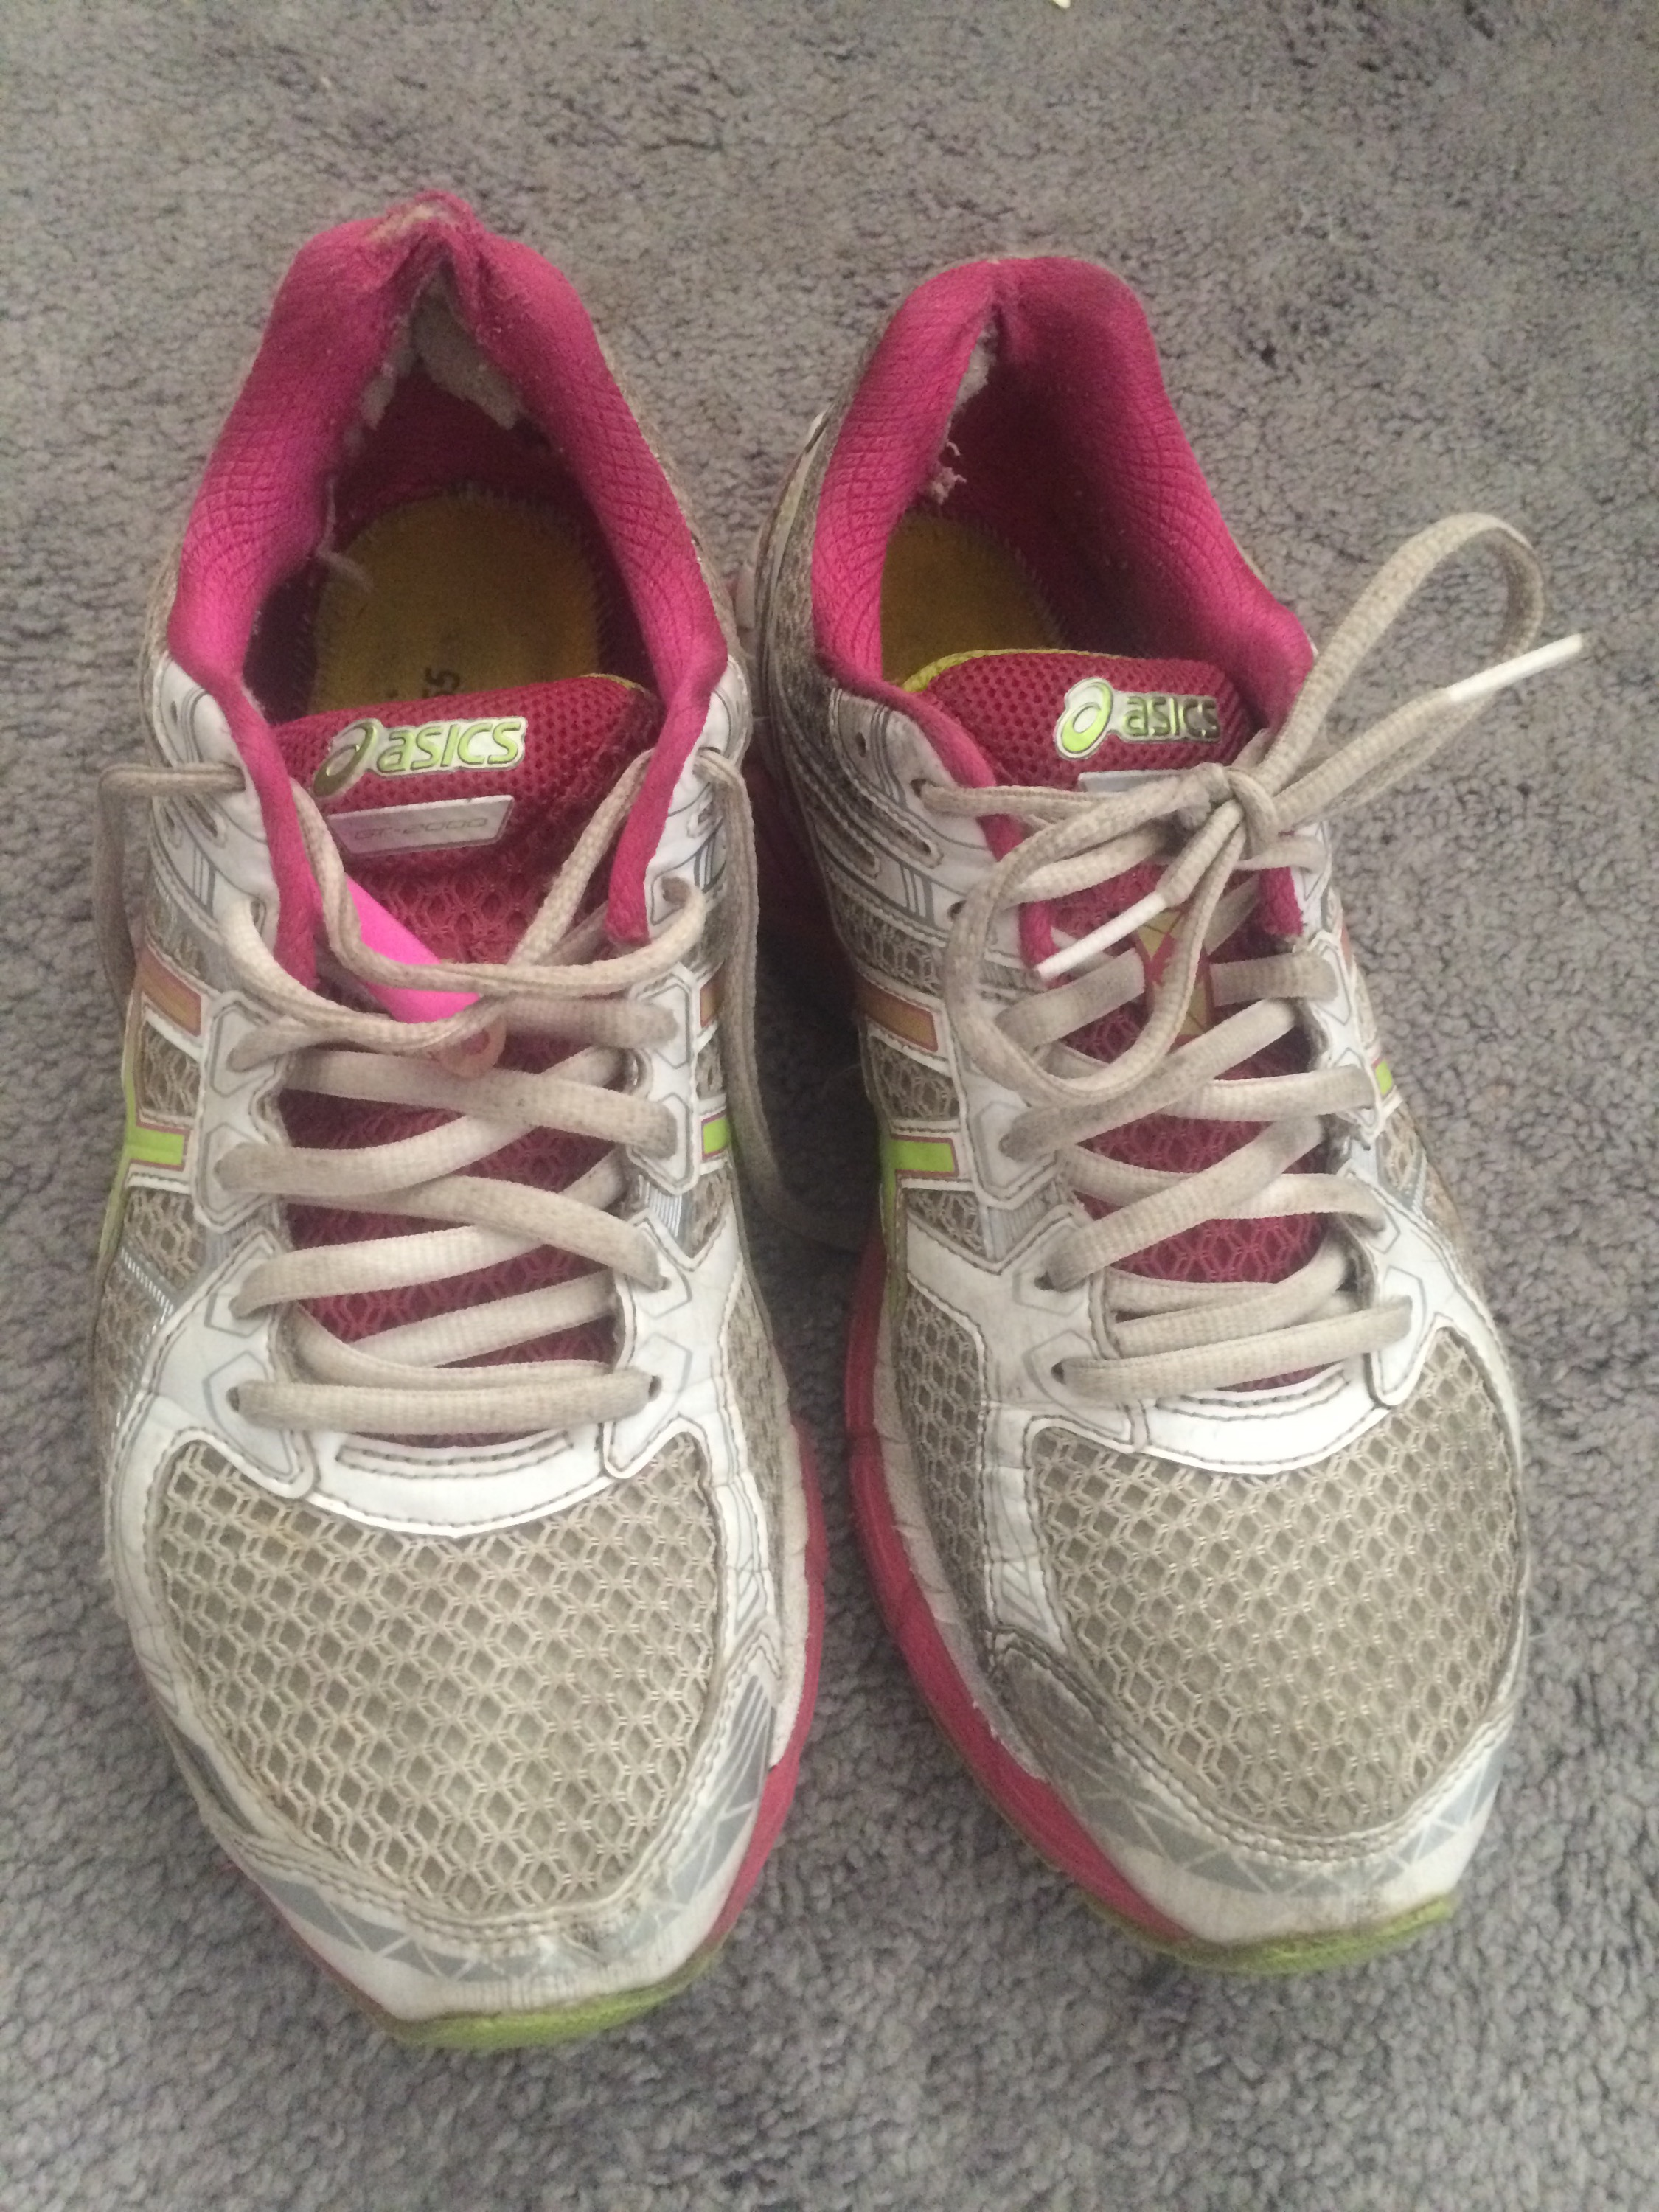 Running shoes-The gift that keeps giving!